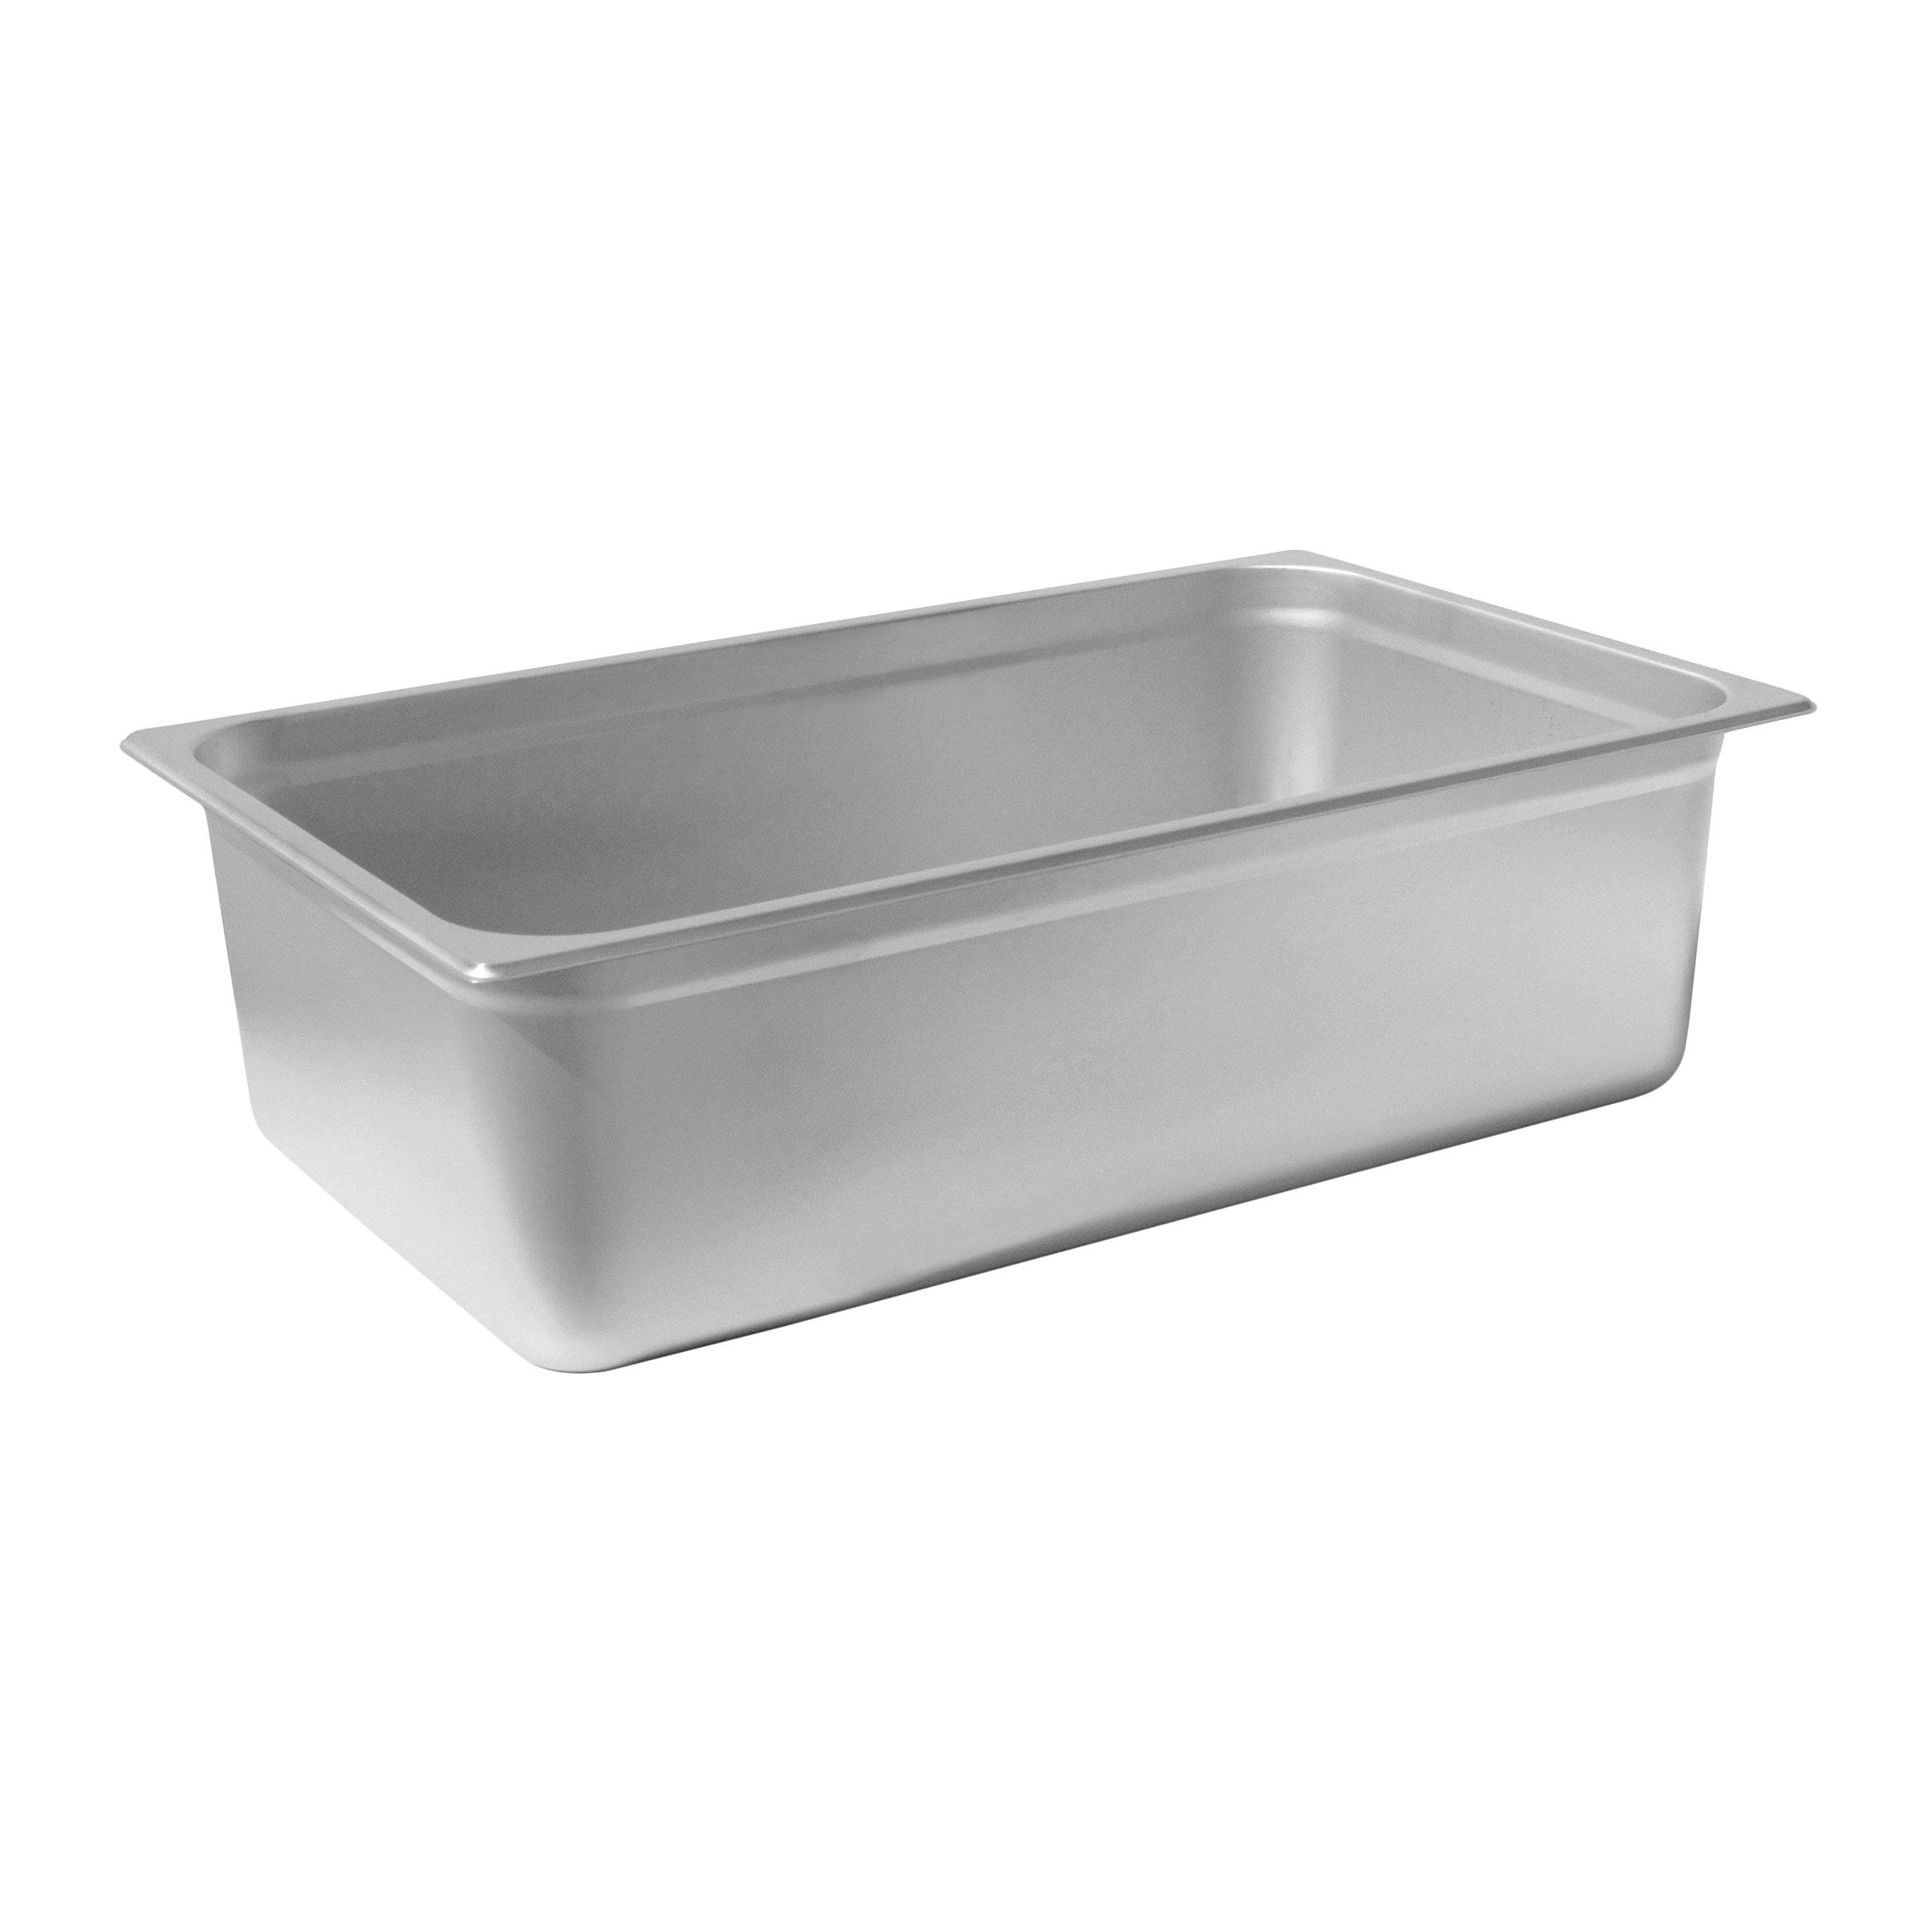 Chef's Supreme - 6'' Full Size Stainless Steam Table Pan by Chef's Supreme